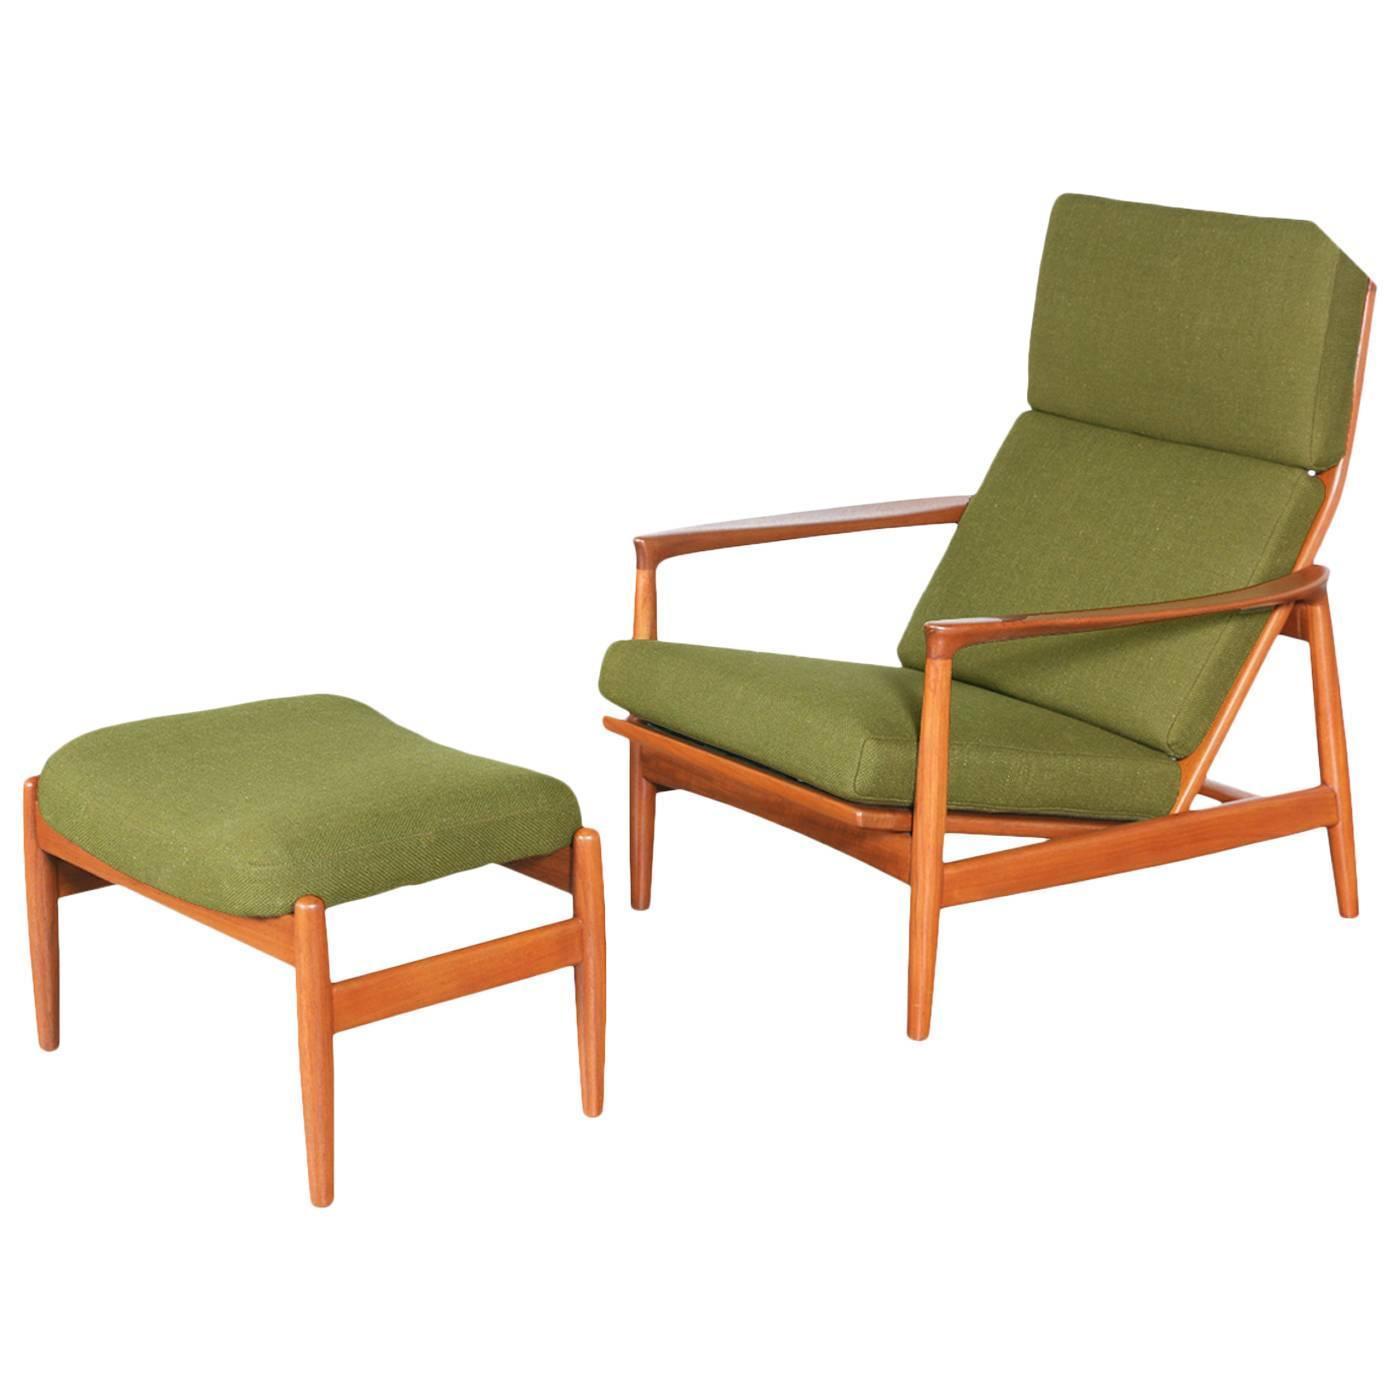 Folke Ohlsson Teak Lounge Chair with Ottoman for DUX at